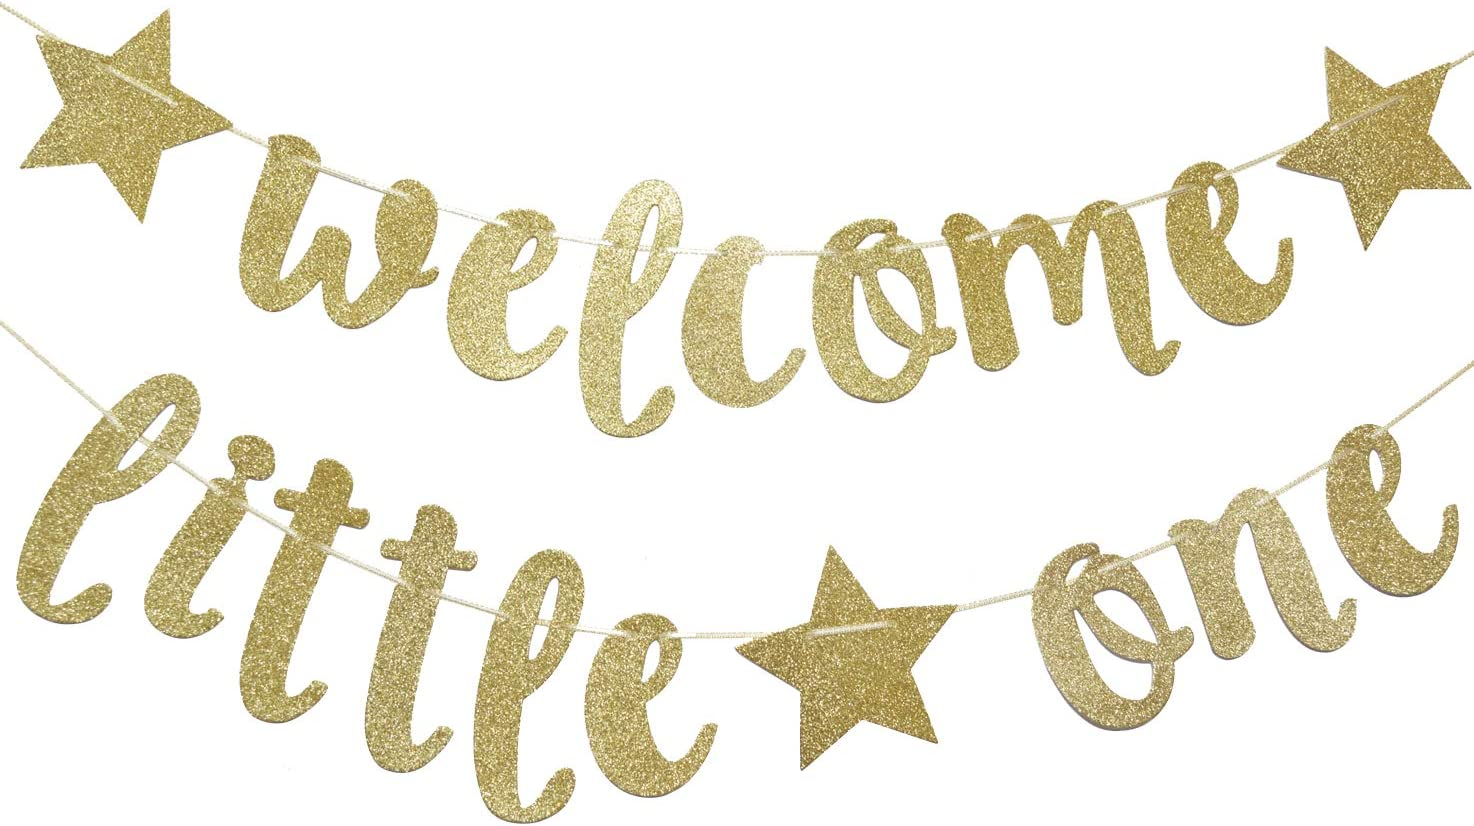 Welcome Little One Glitter Gold Banner, Baby Shower, Gender Reveal Party, Glitter Party Decor (Gold)